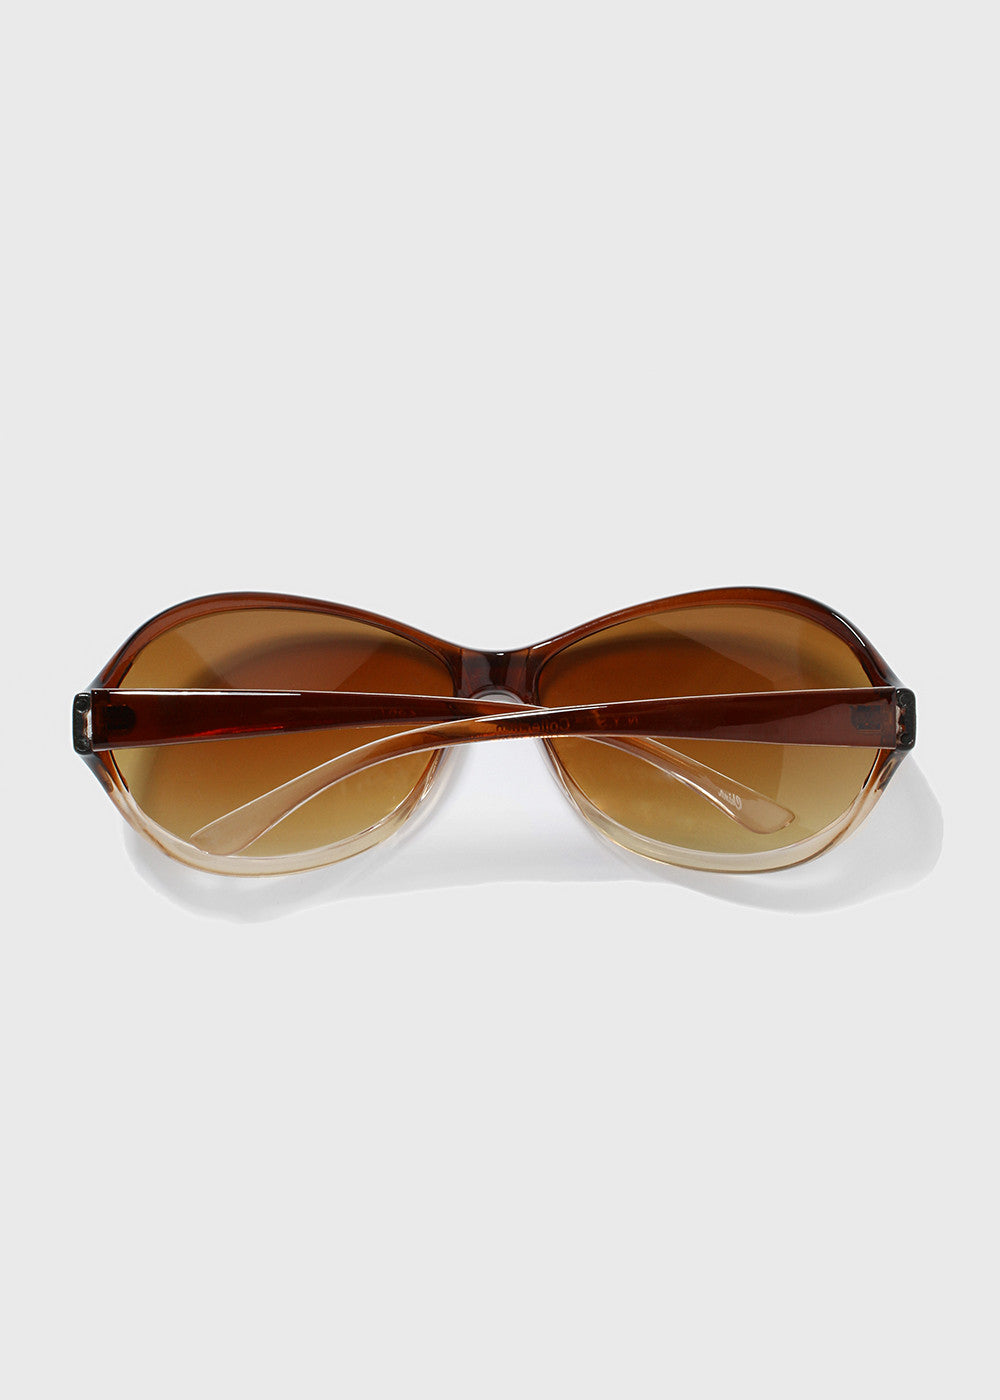 Oval Sunglasses- Beige